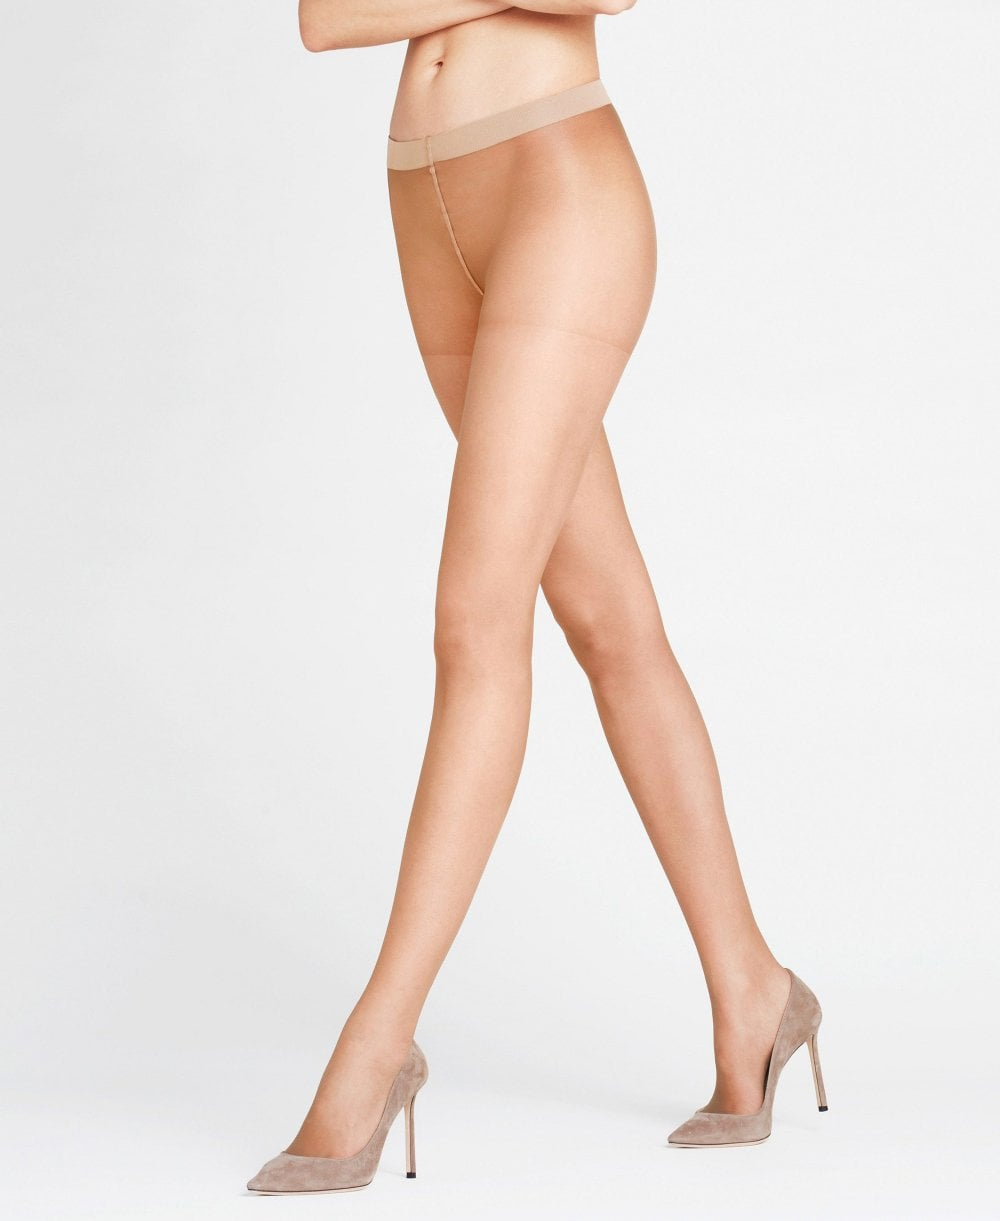 a7f11b6059830 Falke Invisible Deluxe 8 Denier Tights - Tights from luxury-legs.com UK